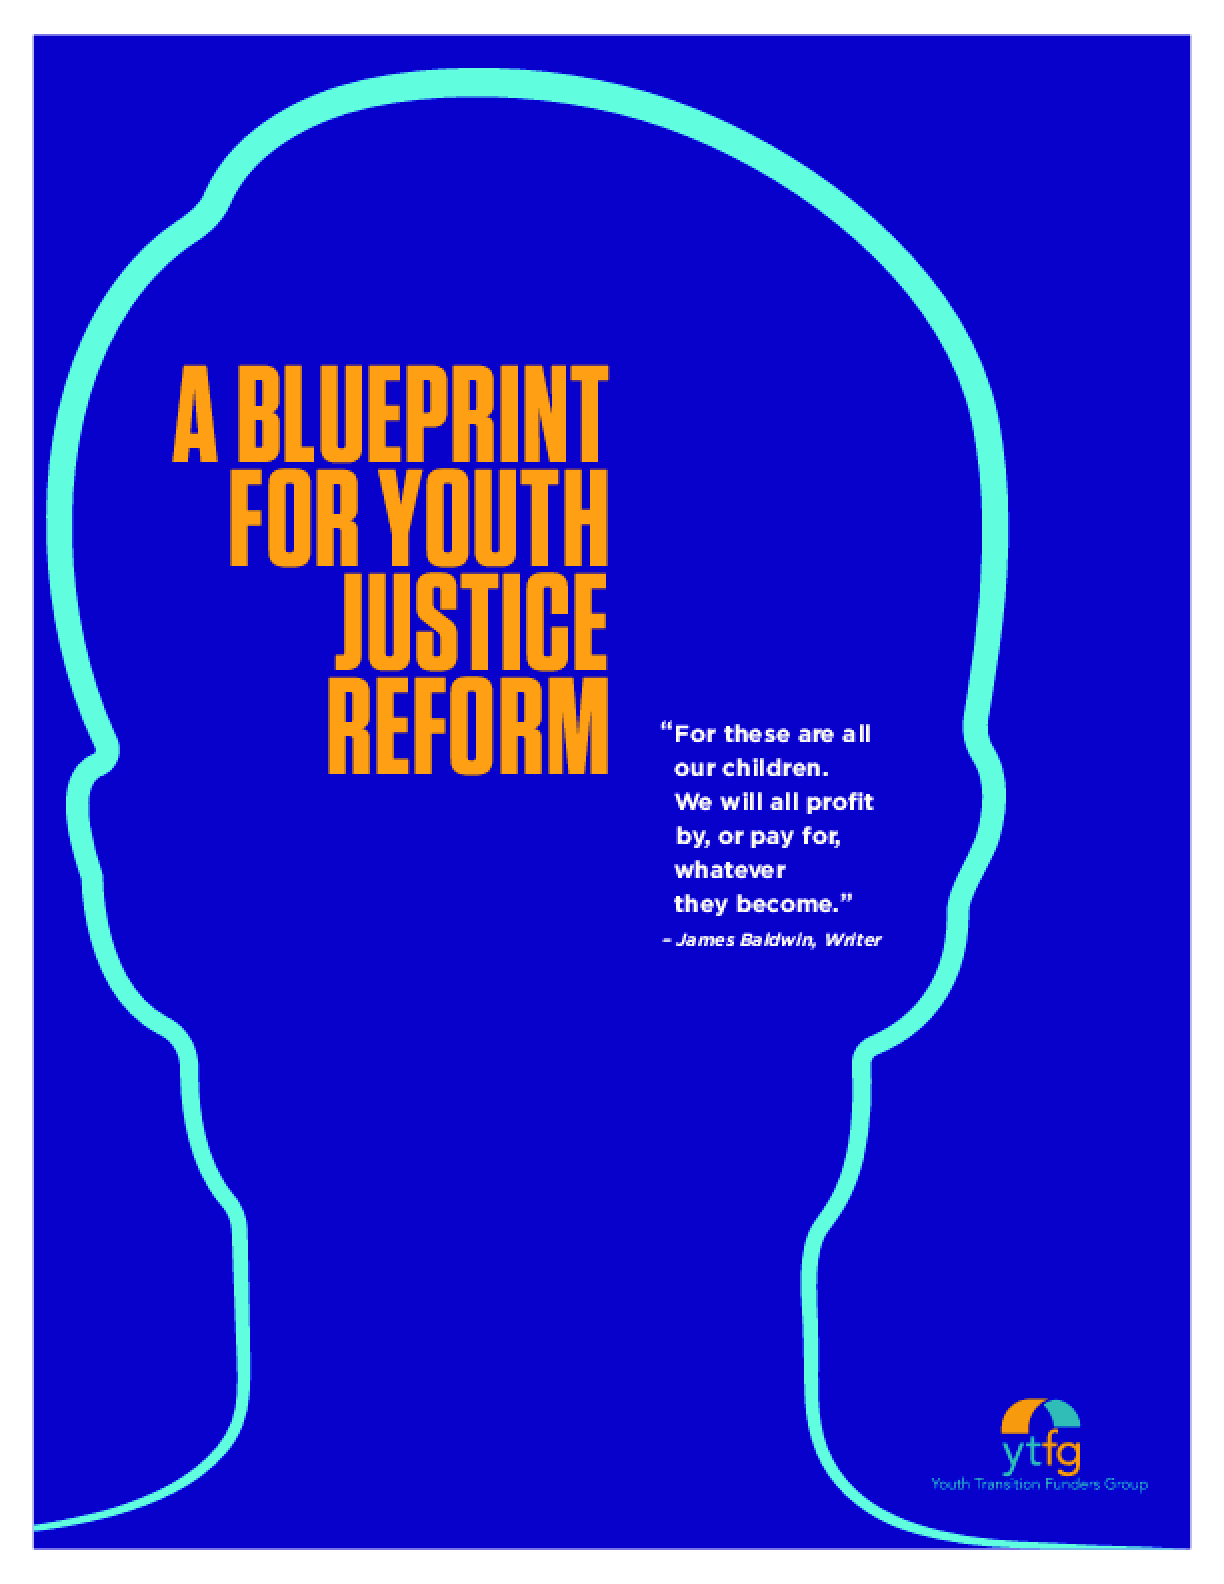 A Blueprint for Youth Justice Reform